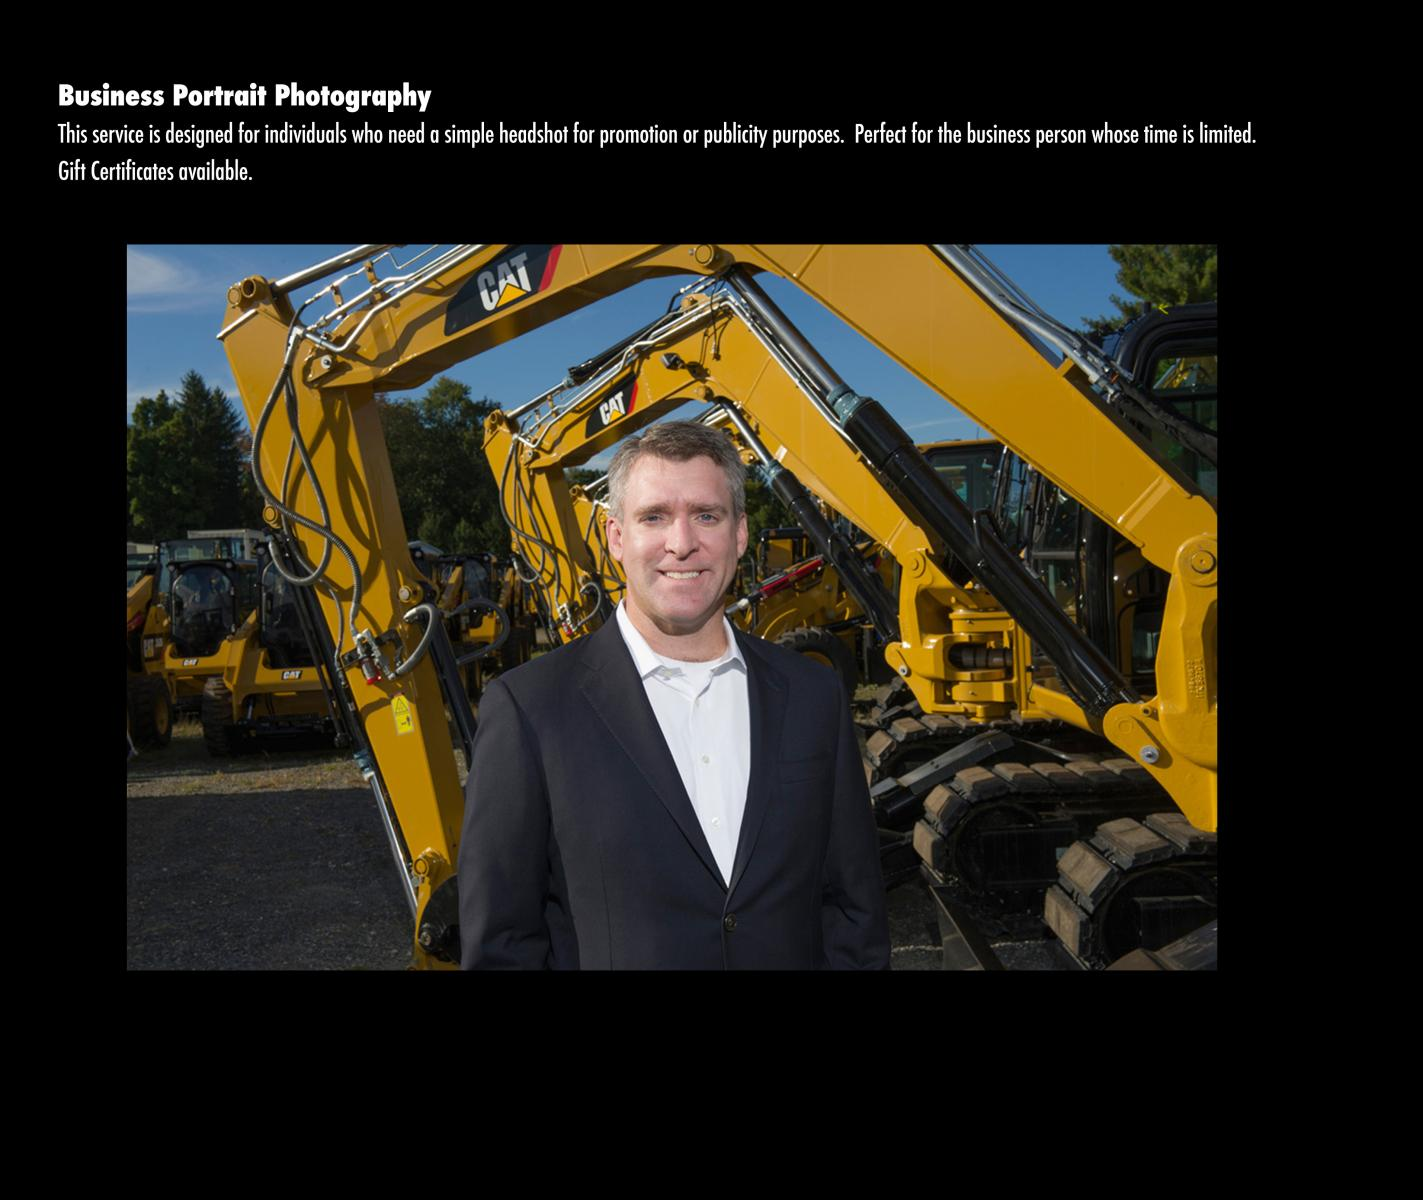 Poughkeepsie Business Portrait Photography